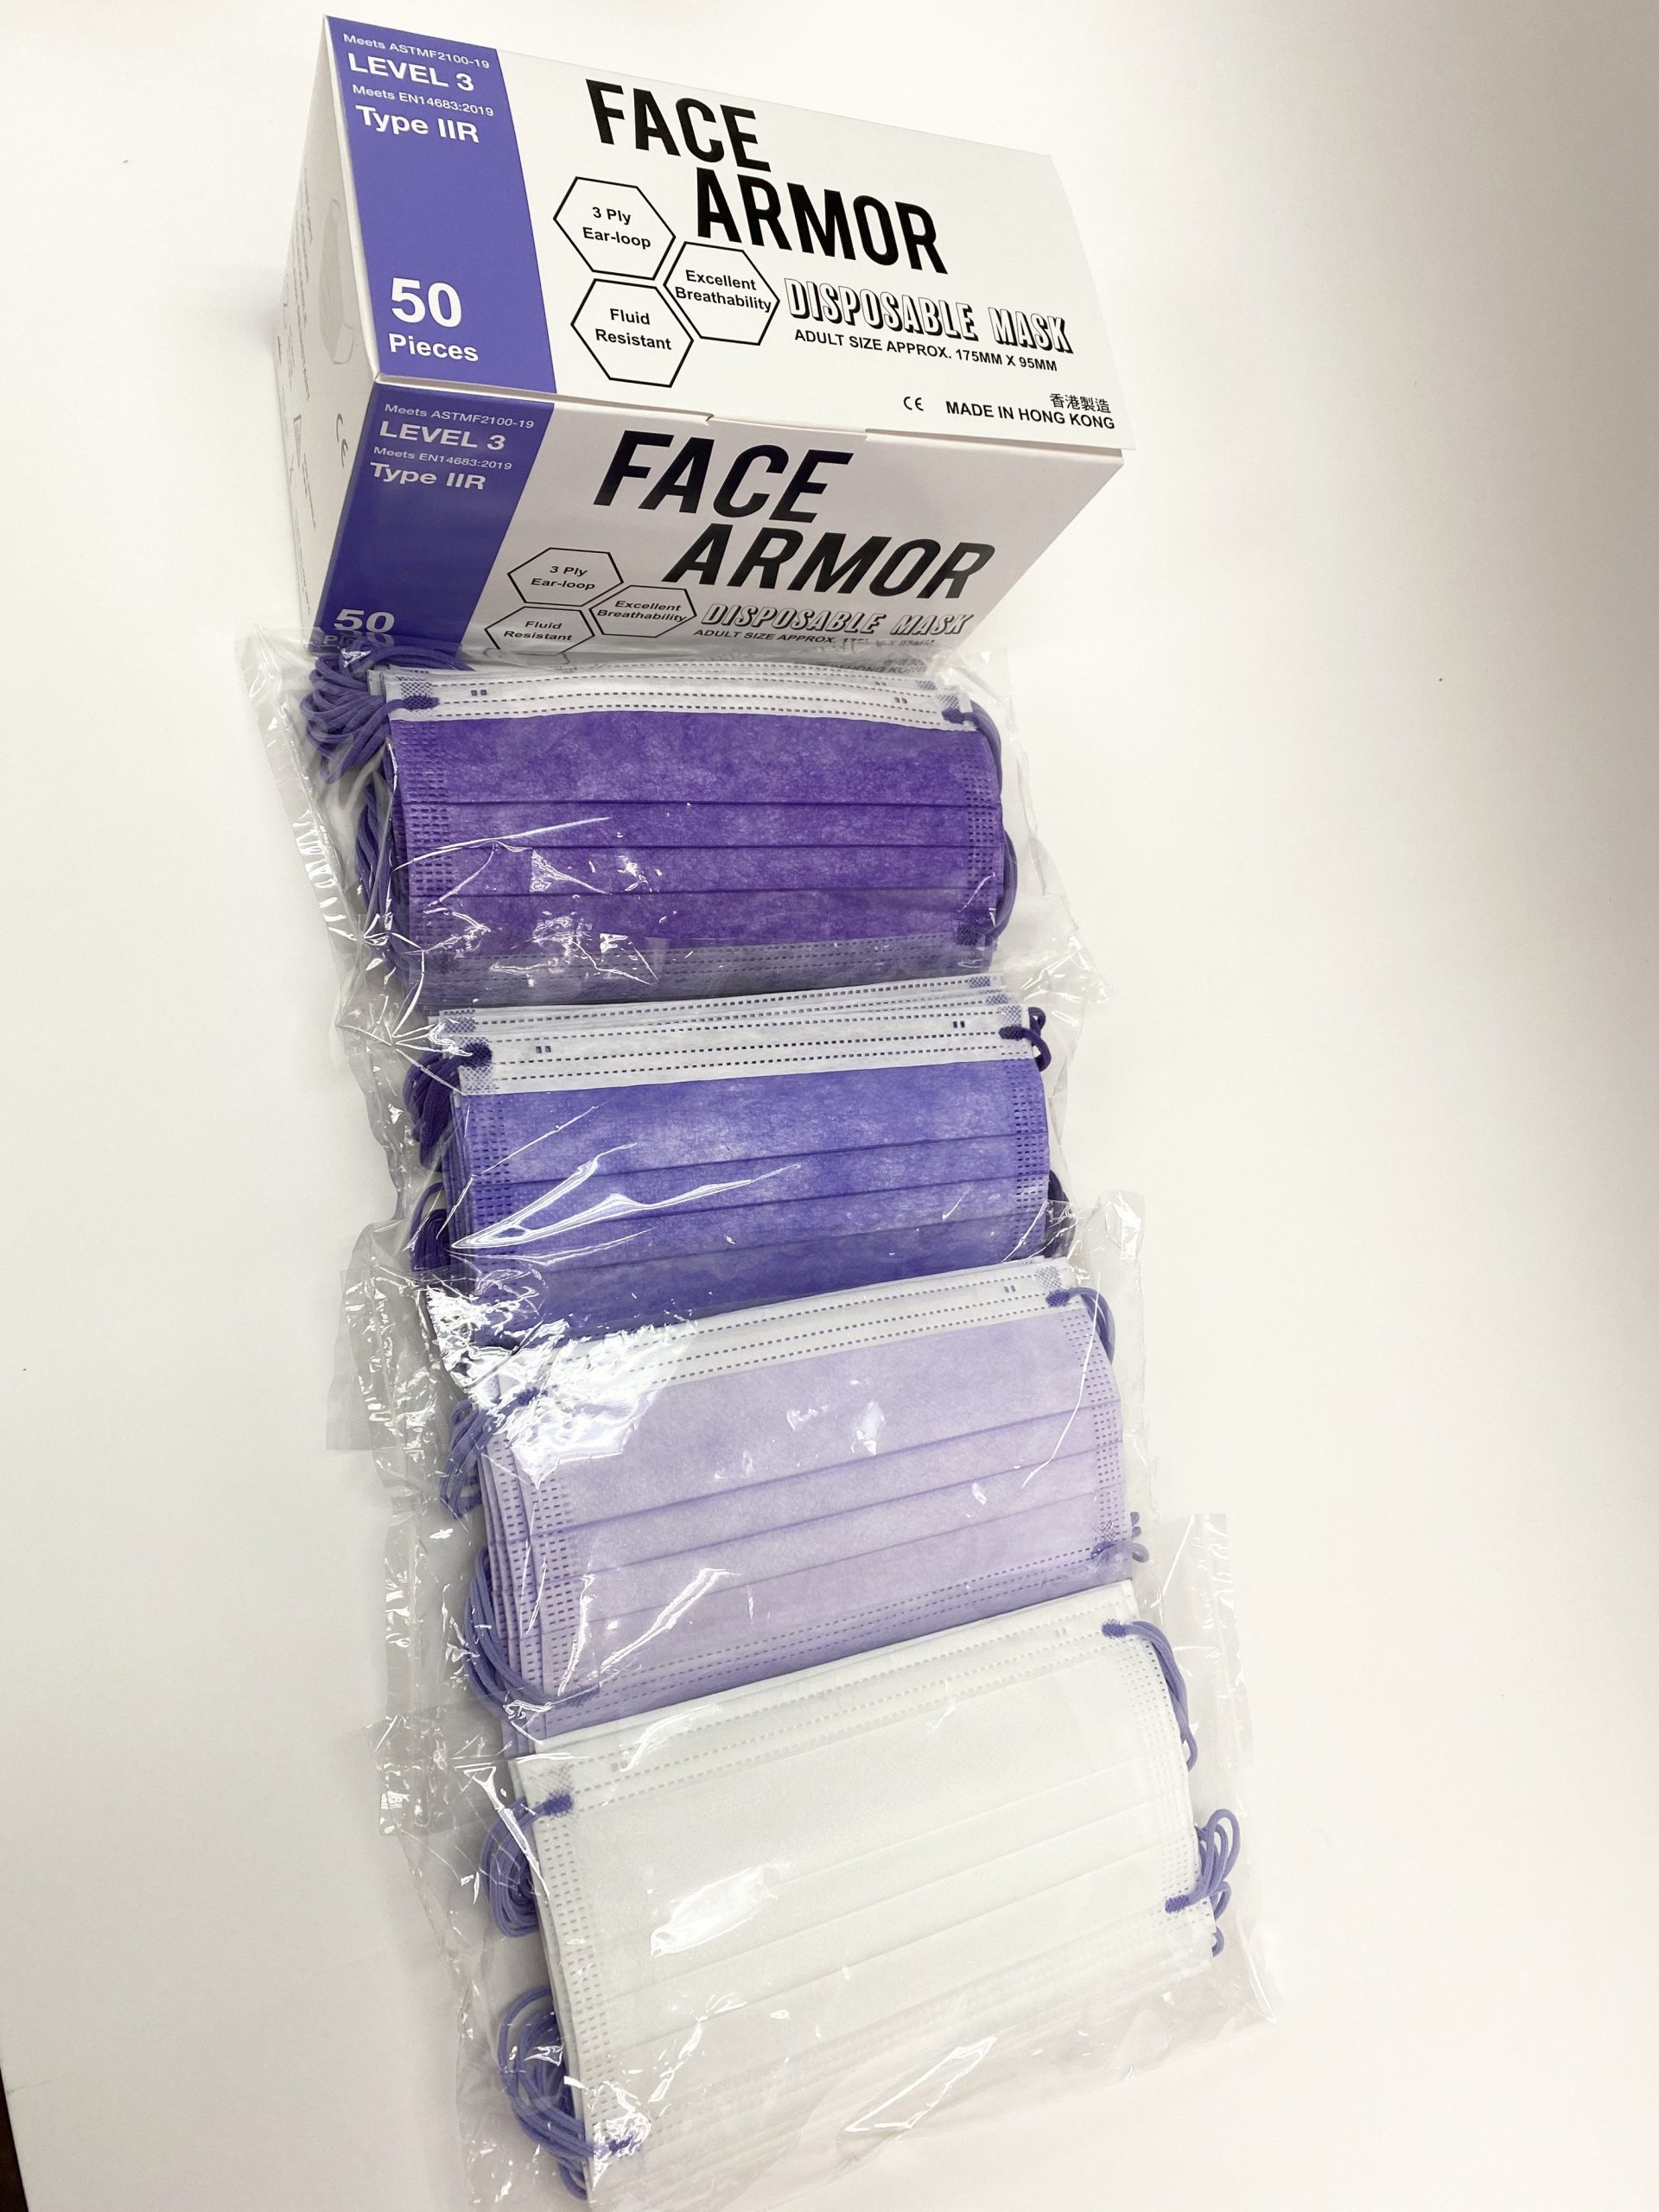 Face Armor Disposable Masks | ASTM LEVEL 3 | Made in Hong Kong| 50 PIECES | MIXED PURPLE